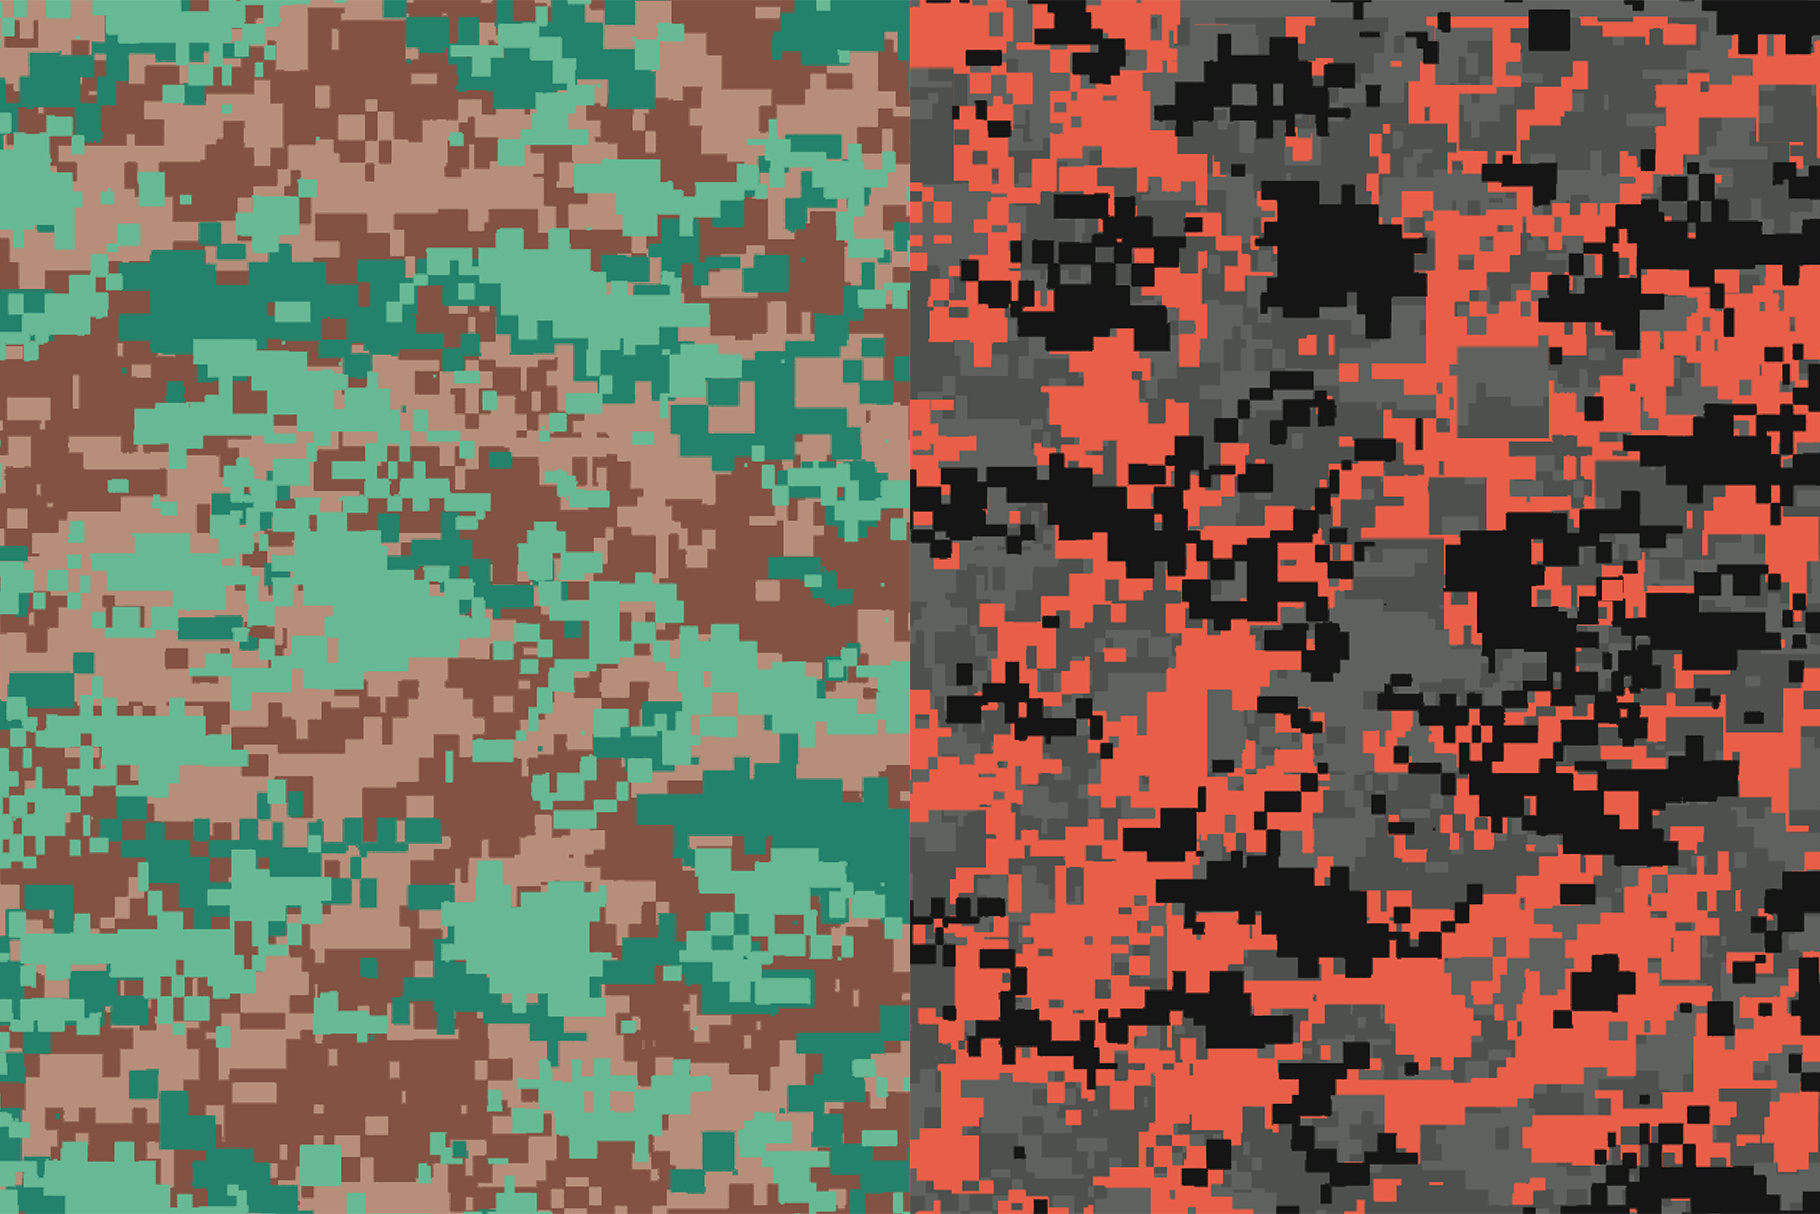 10 Pixel Camouflage Patterns example image 8